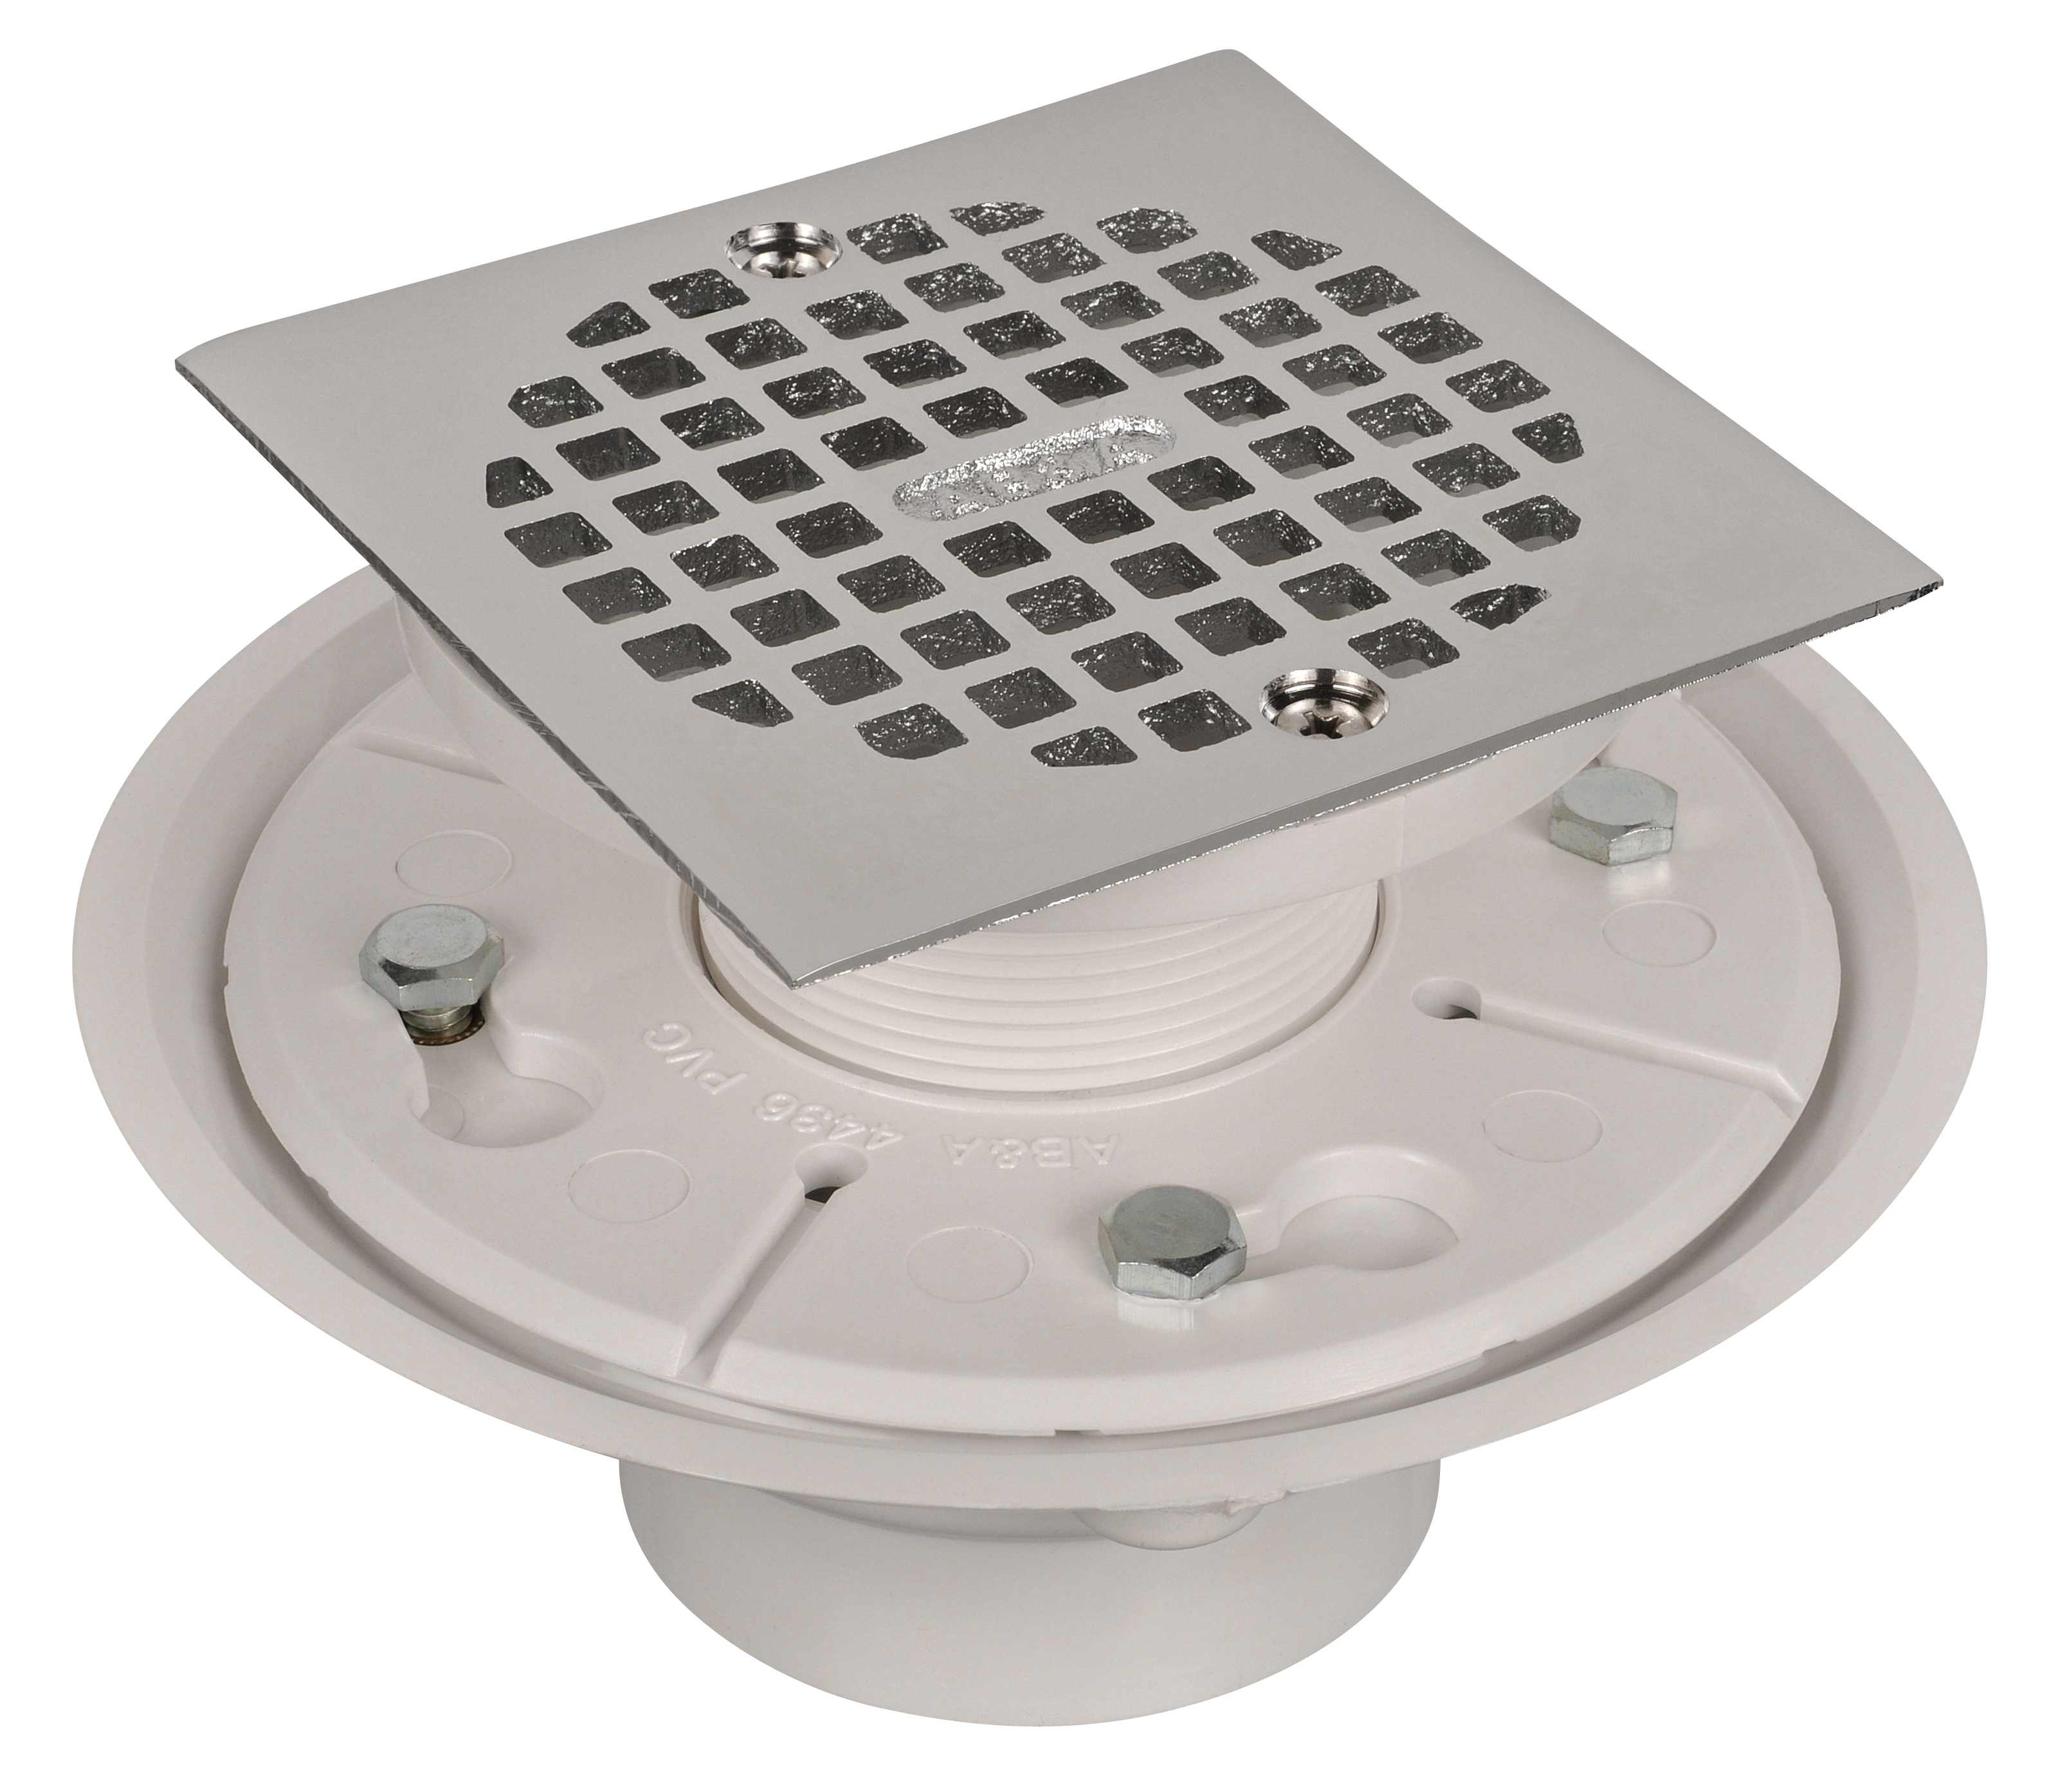 AB&A Low Profile Adjustable Shower Drain with Reversible Clamping Ring - Square Cast Brass Strainer, PVC Body, Chrome